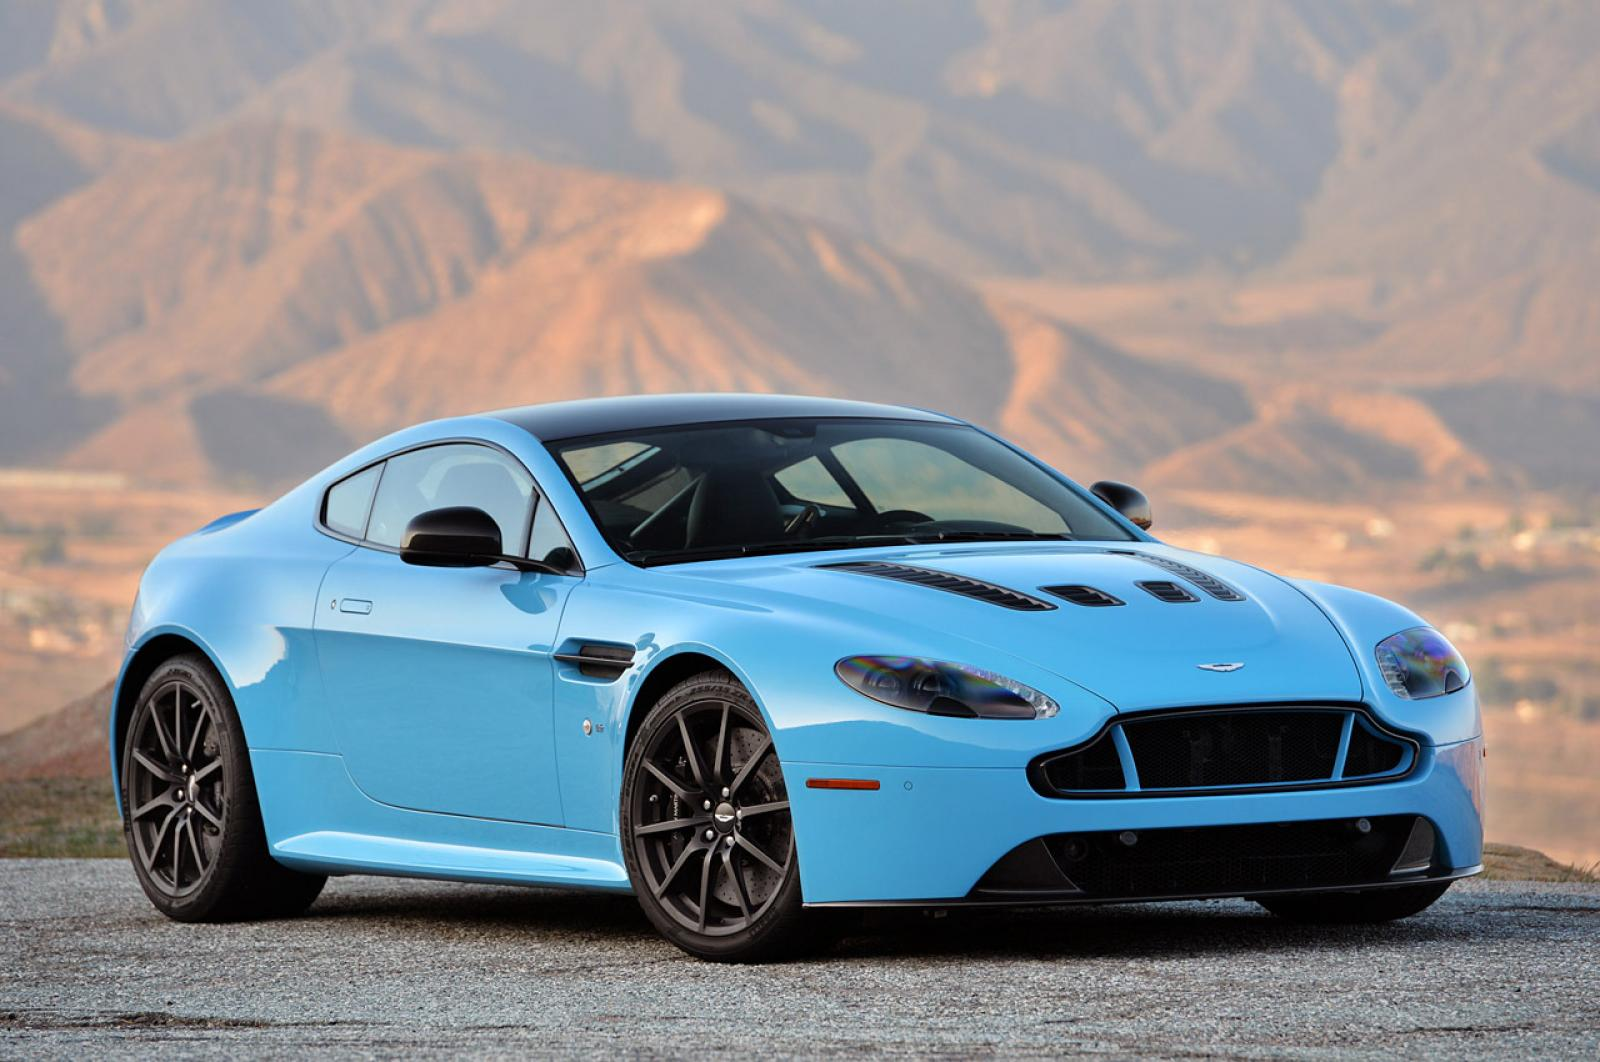 2015 aston martin v12 vantage s information and photos zombiedrive. Black Bedroom Furniture Sets. Home Design Ideas